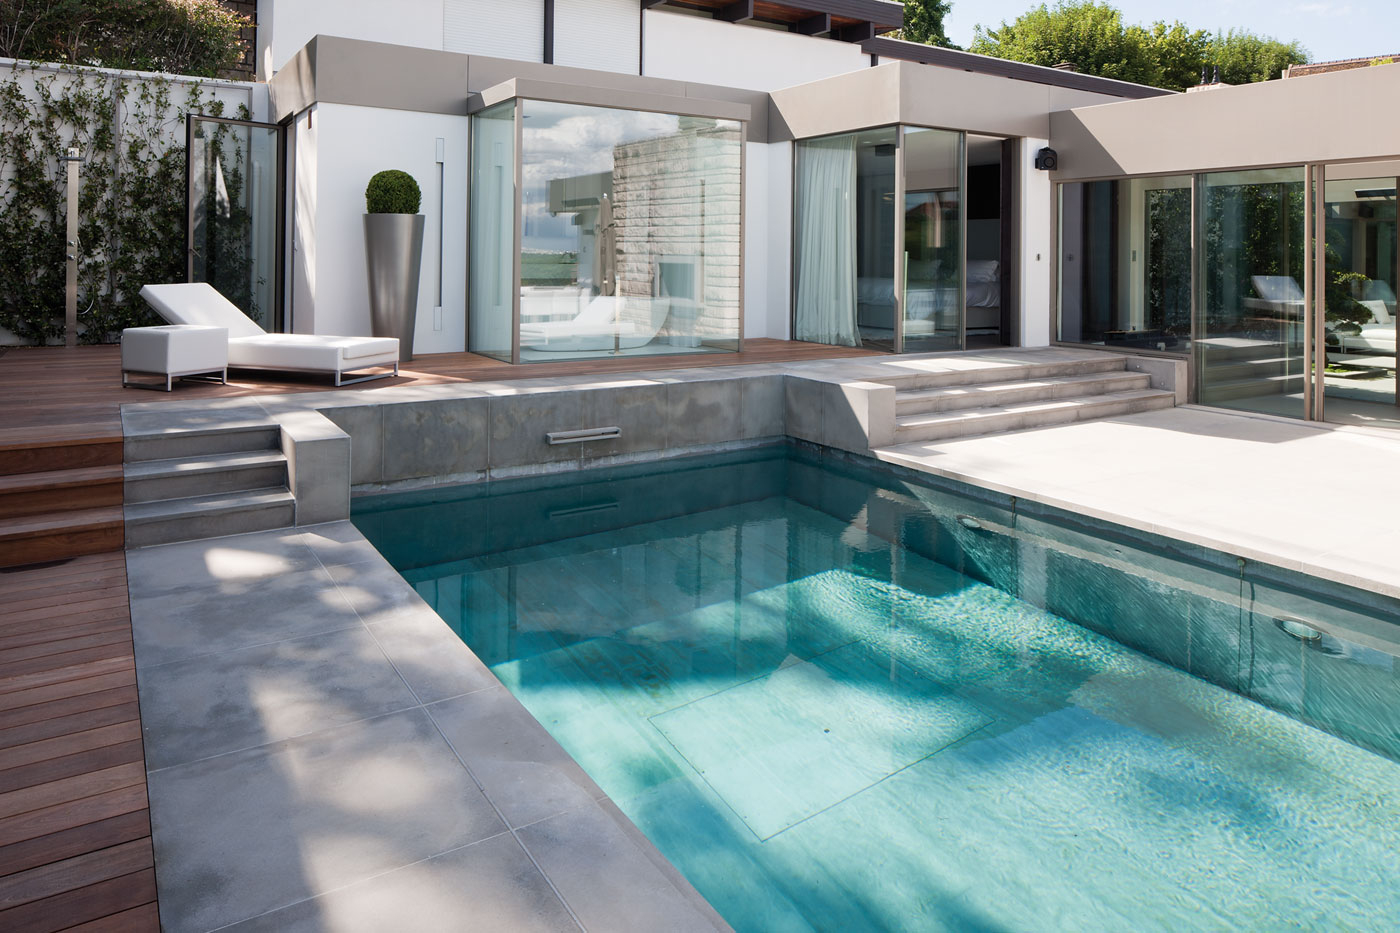 Weeeze : Producer Of Minimal Doors And Windows For ... pour Piscine Saint Cloud